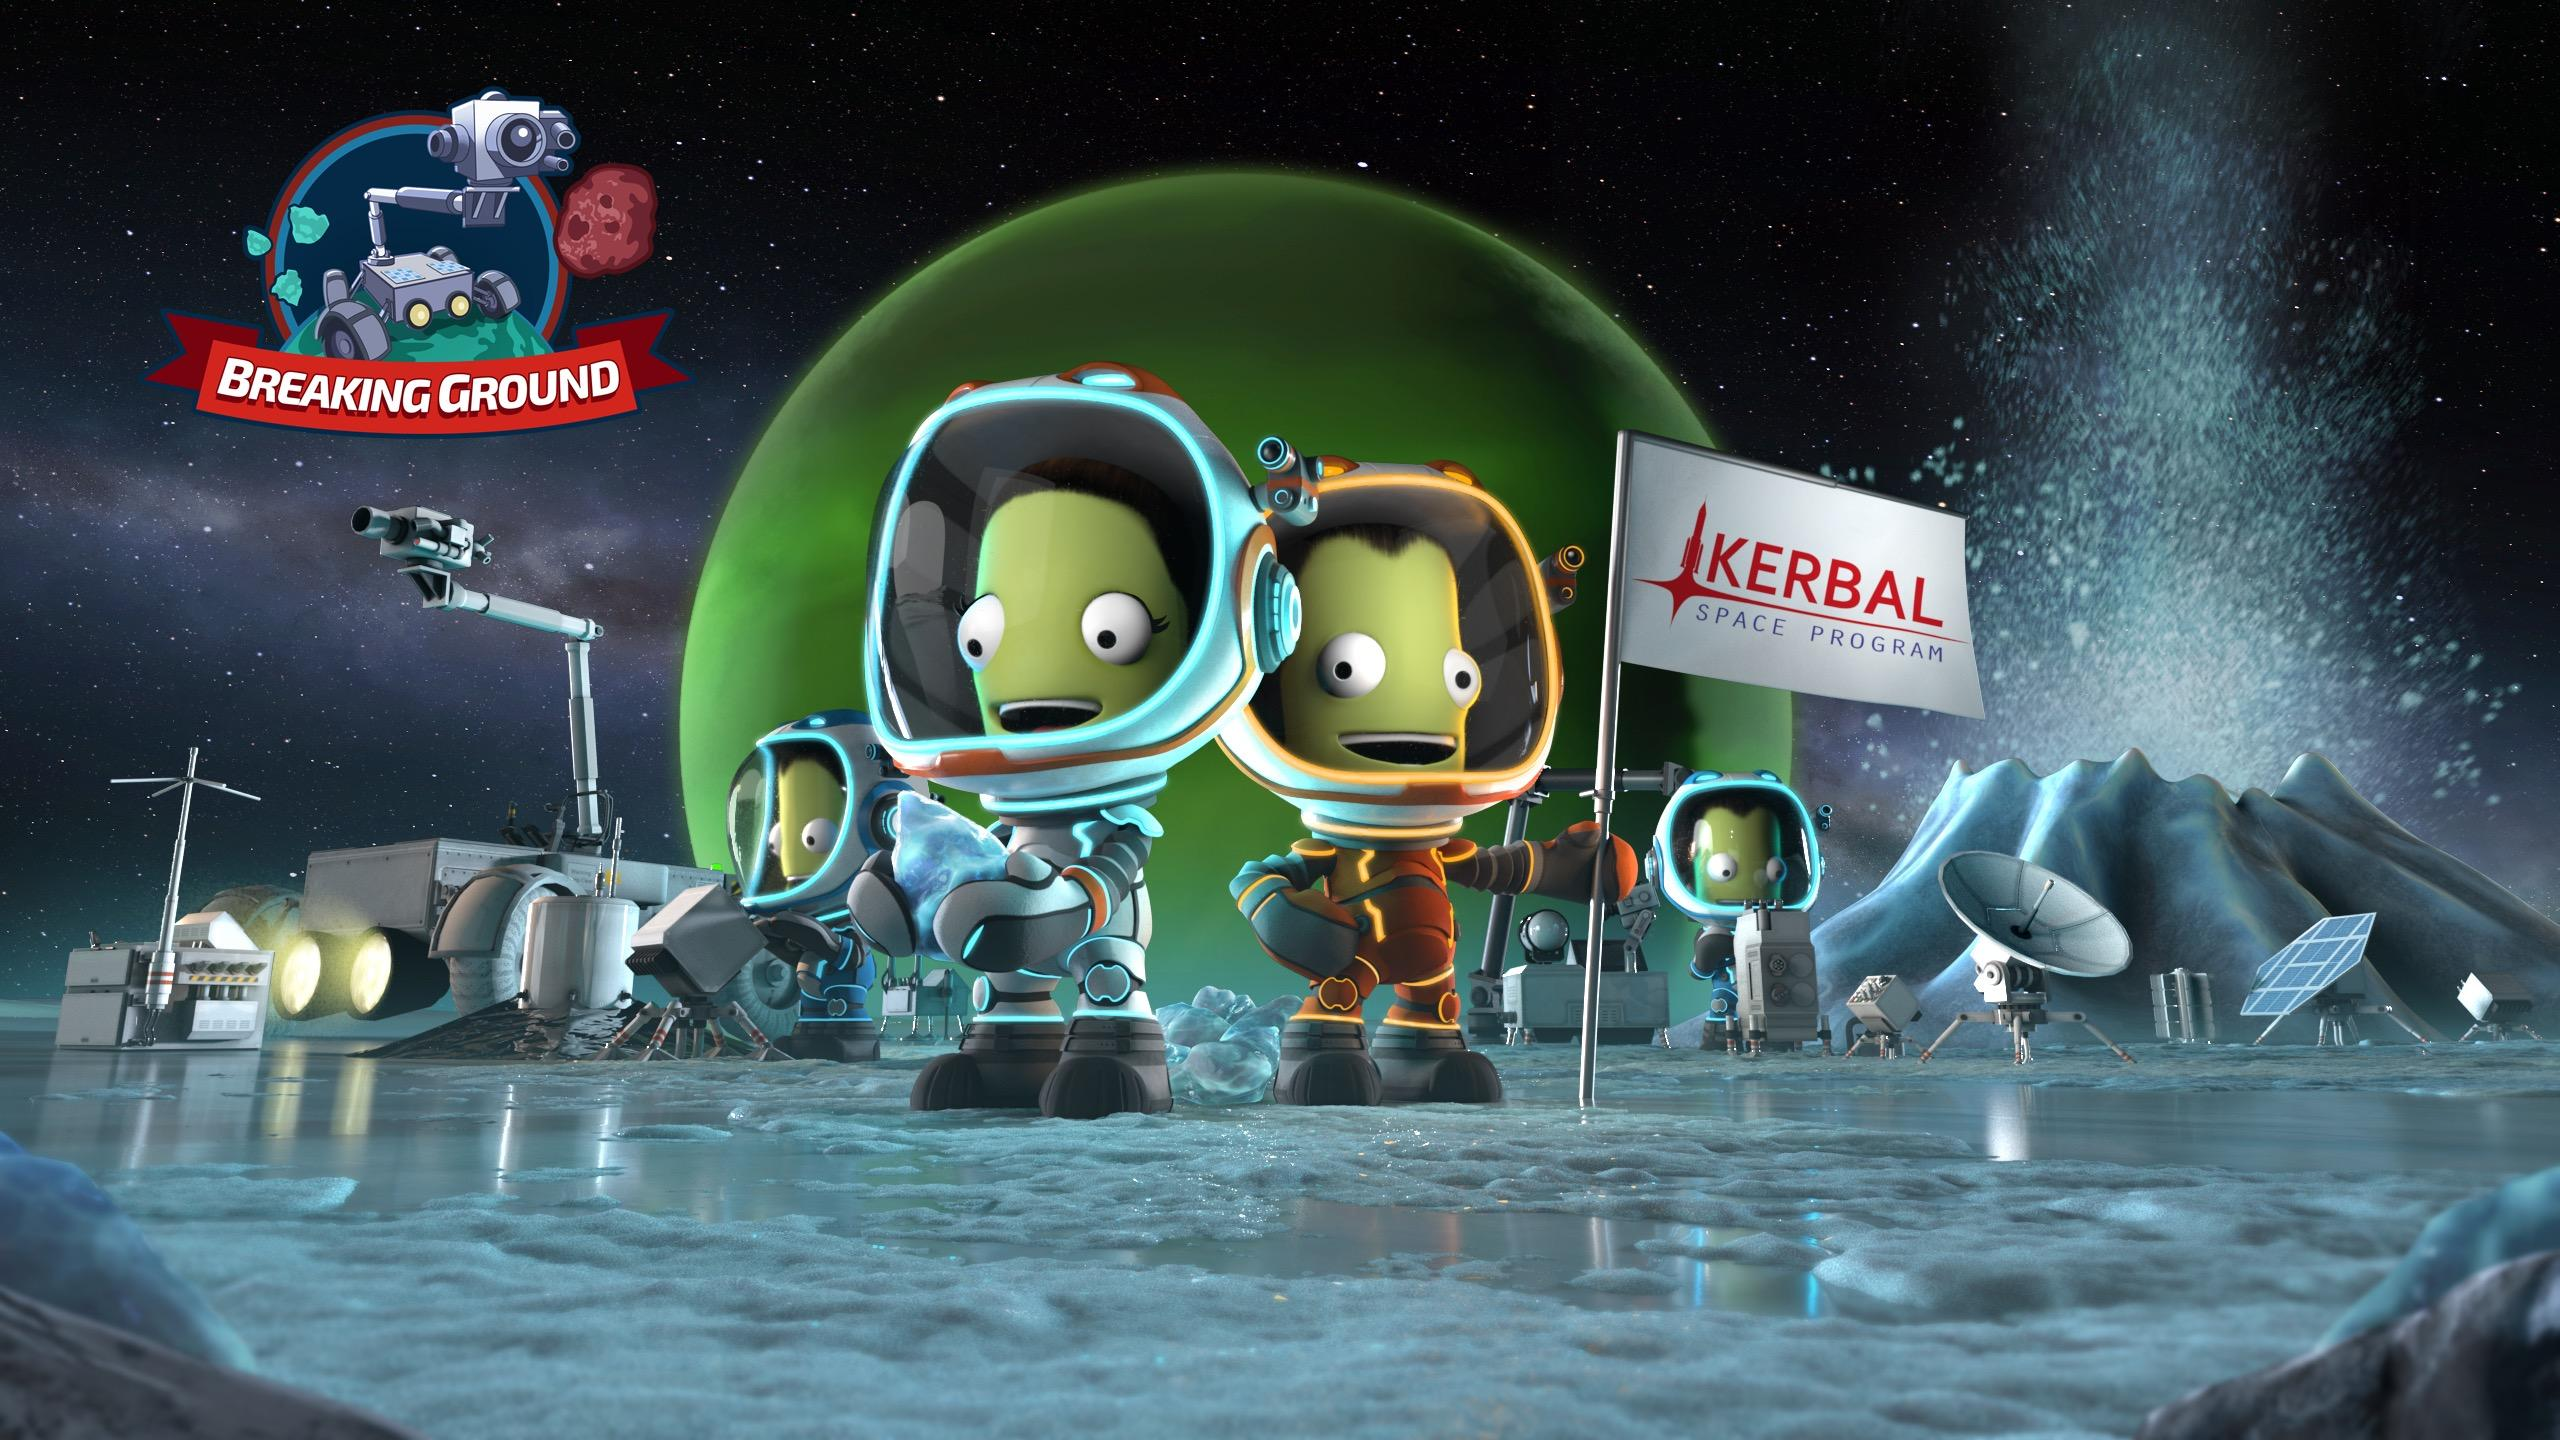 Kerbal Space Program 'Breaking Ground' Expansion Coming in December